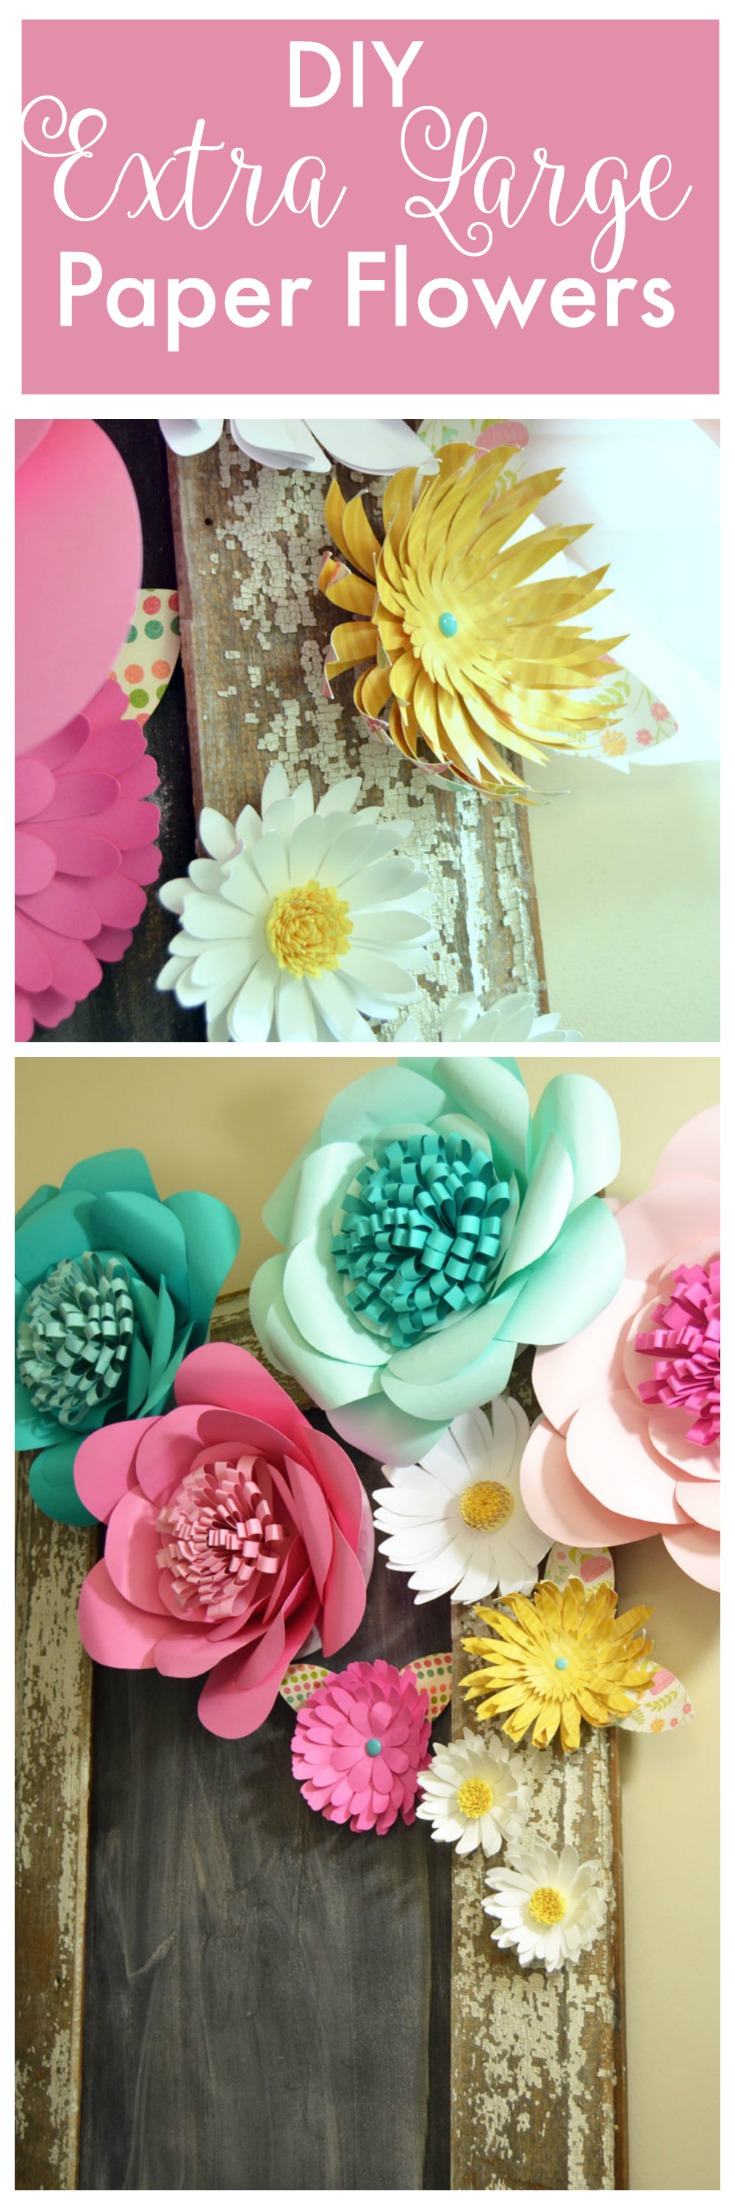 How to make huge paper flowers create and babble diy extra large paper flowers mightylinksfo Images